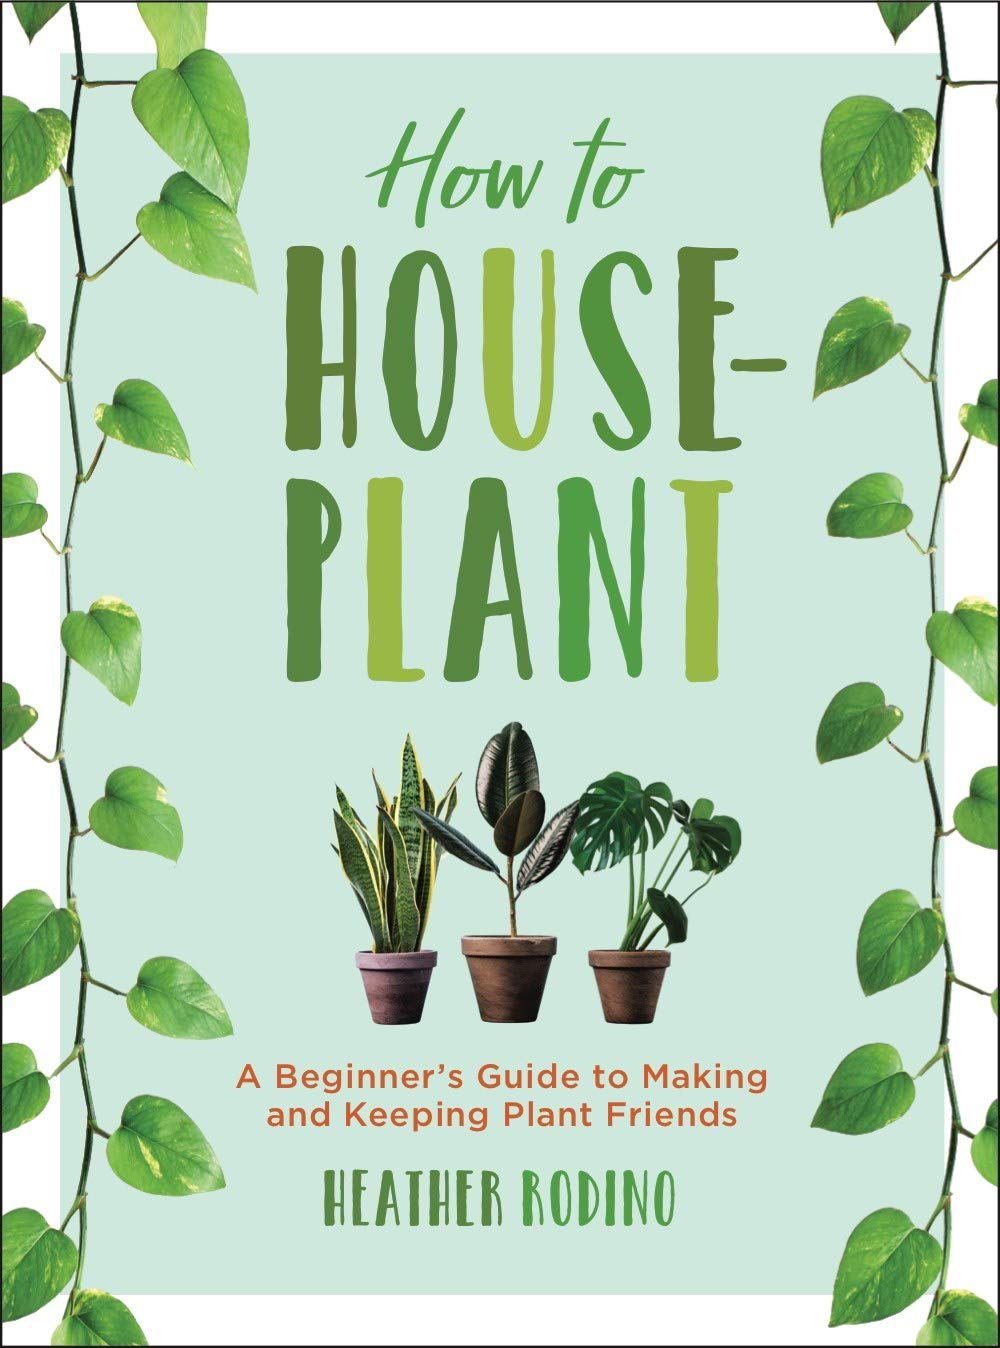 How To Houseplant  A Beginner's Guide To Making And Keeping Plant Friends